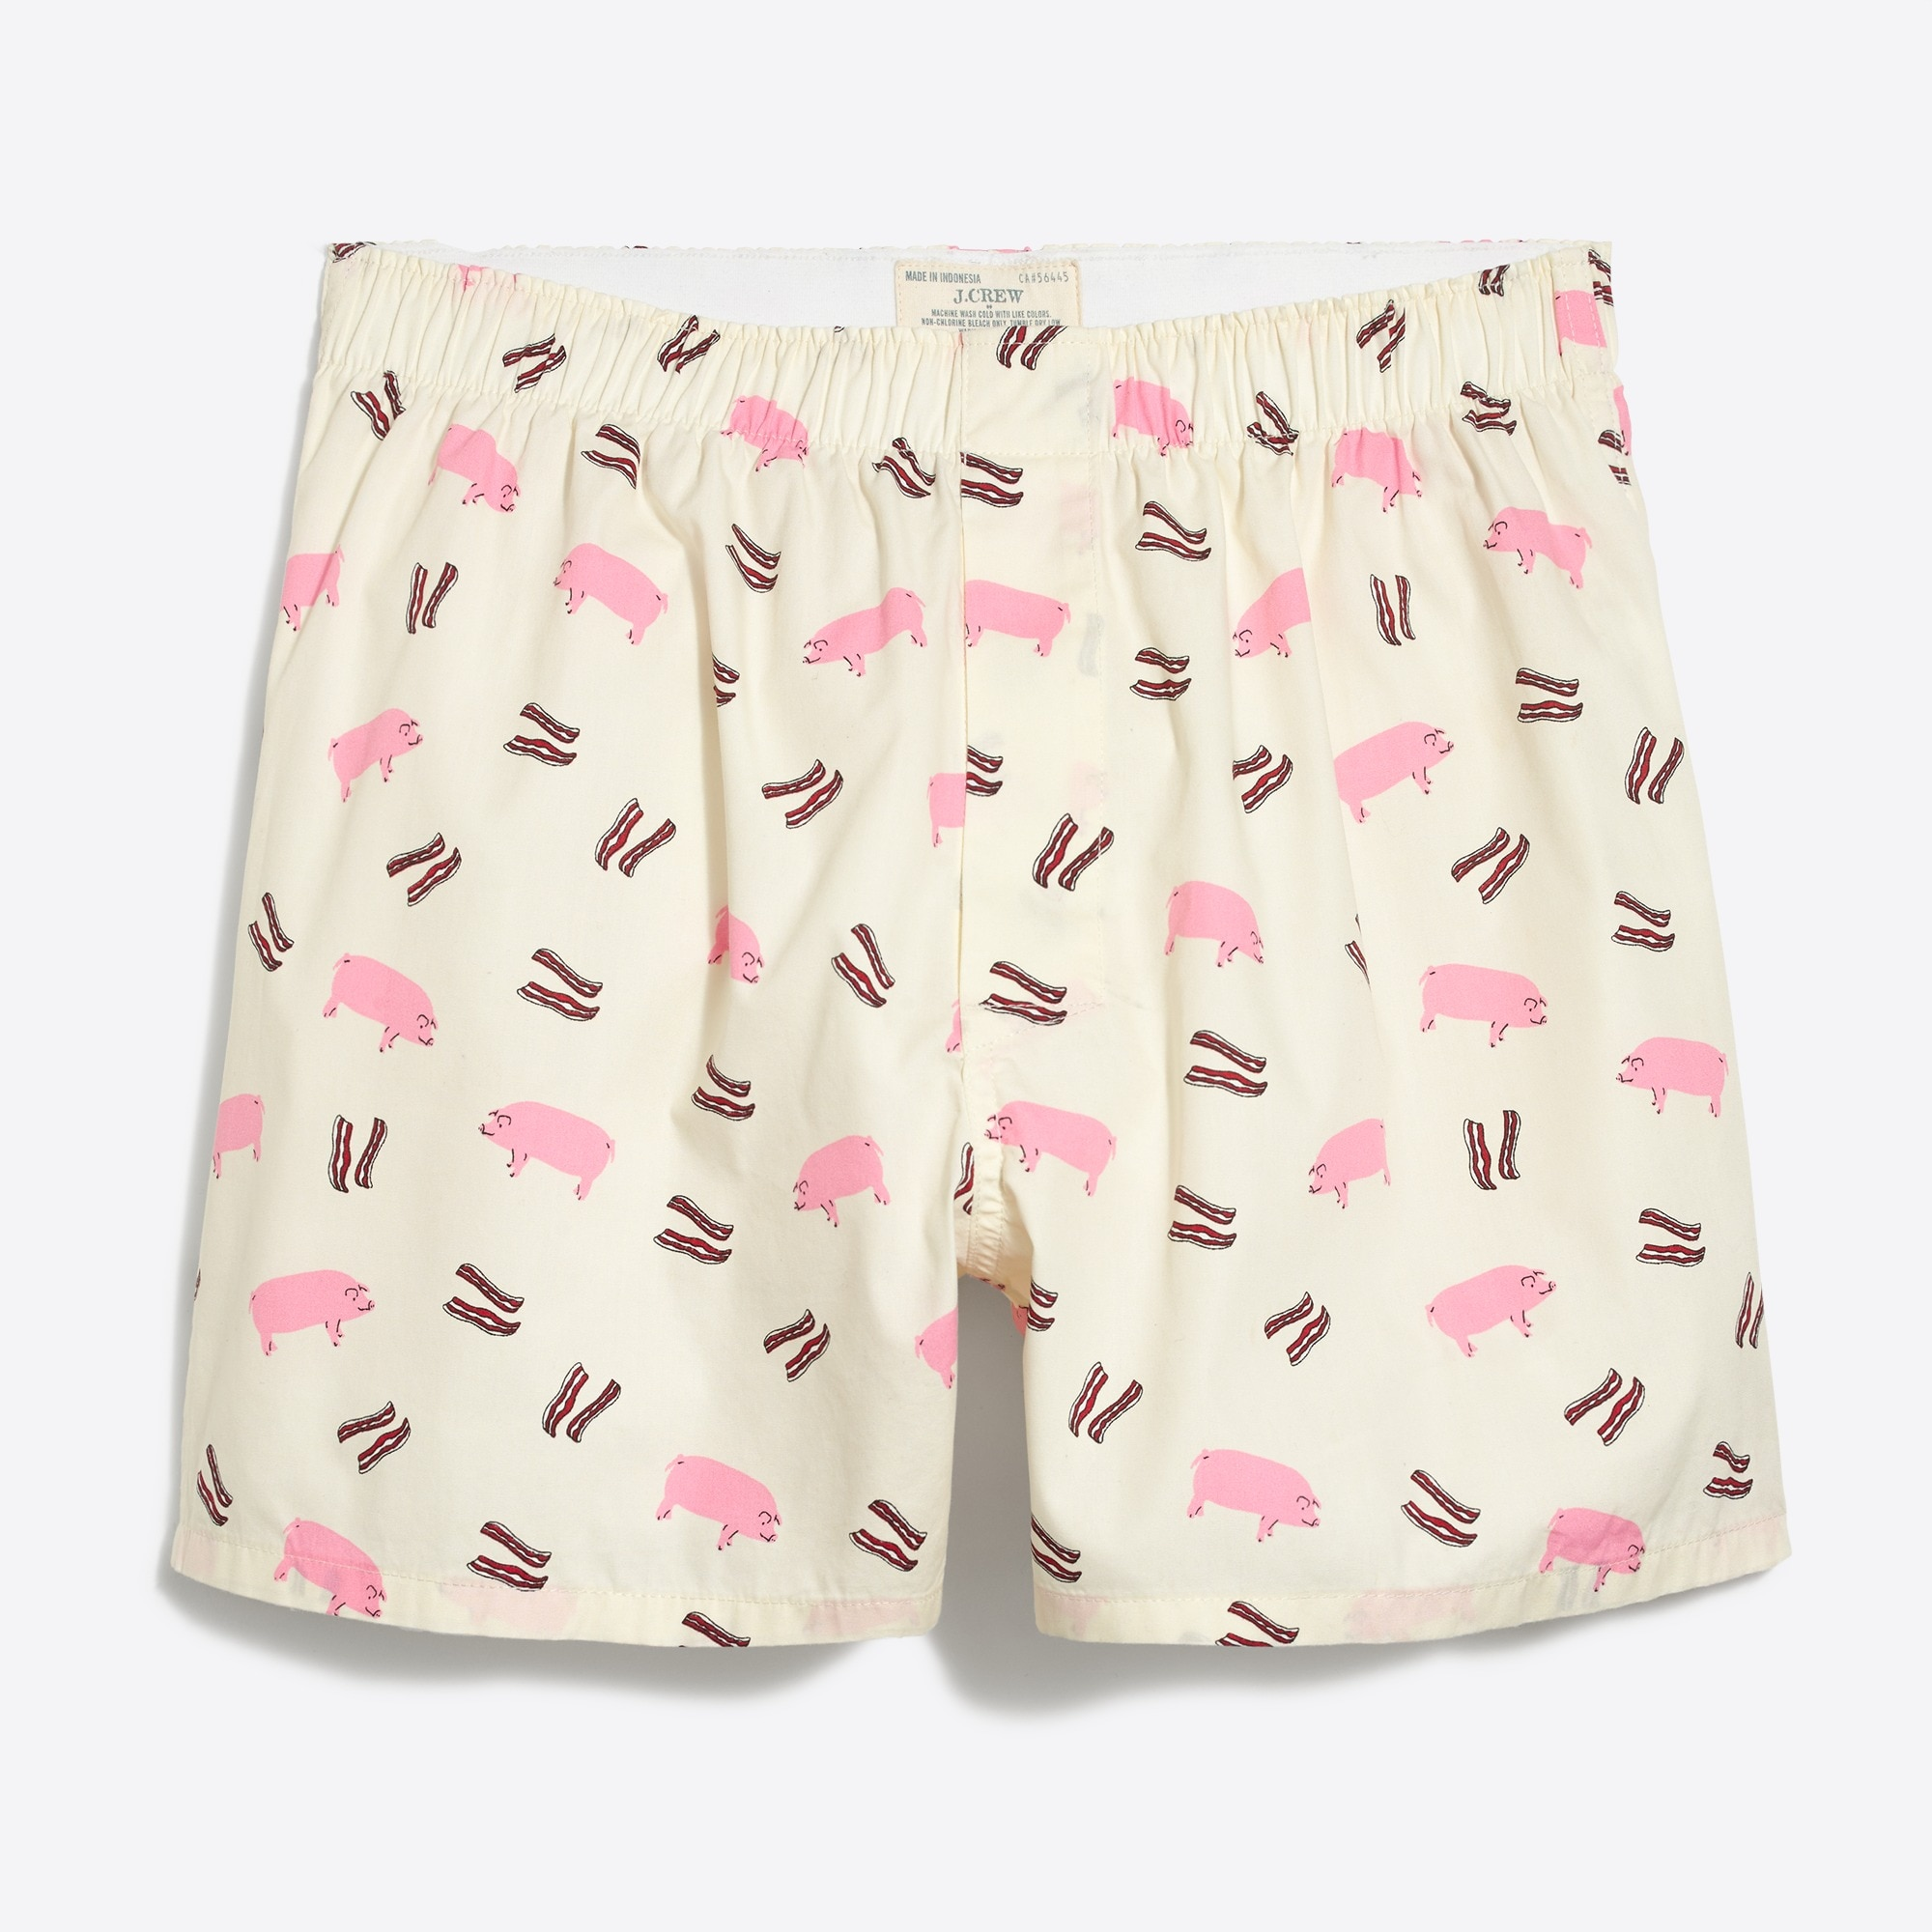 J.Crew Mercantile pig and bacon boxers